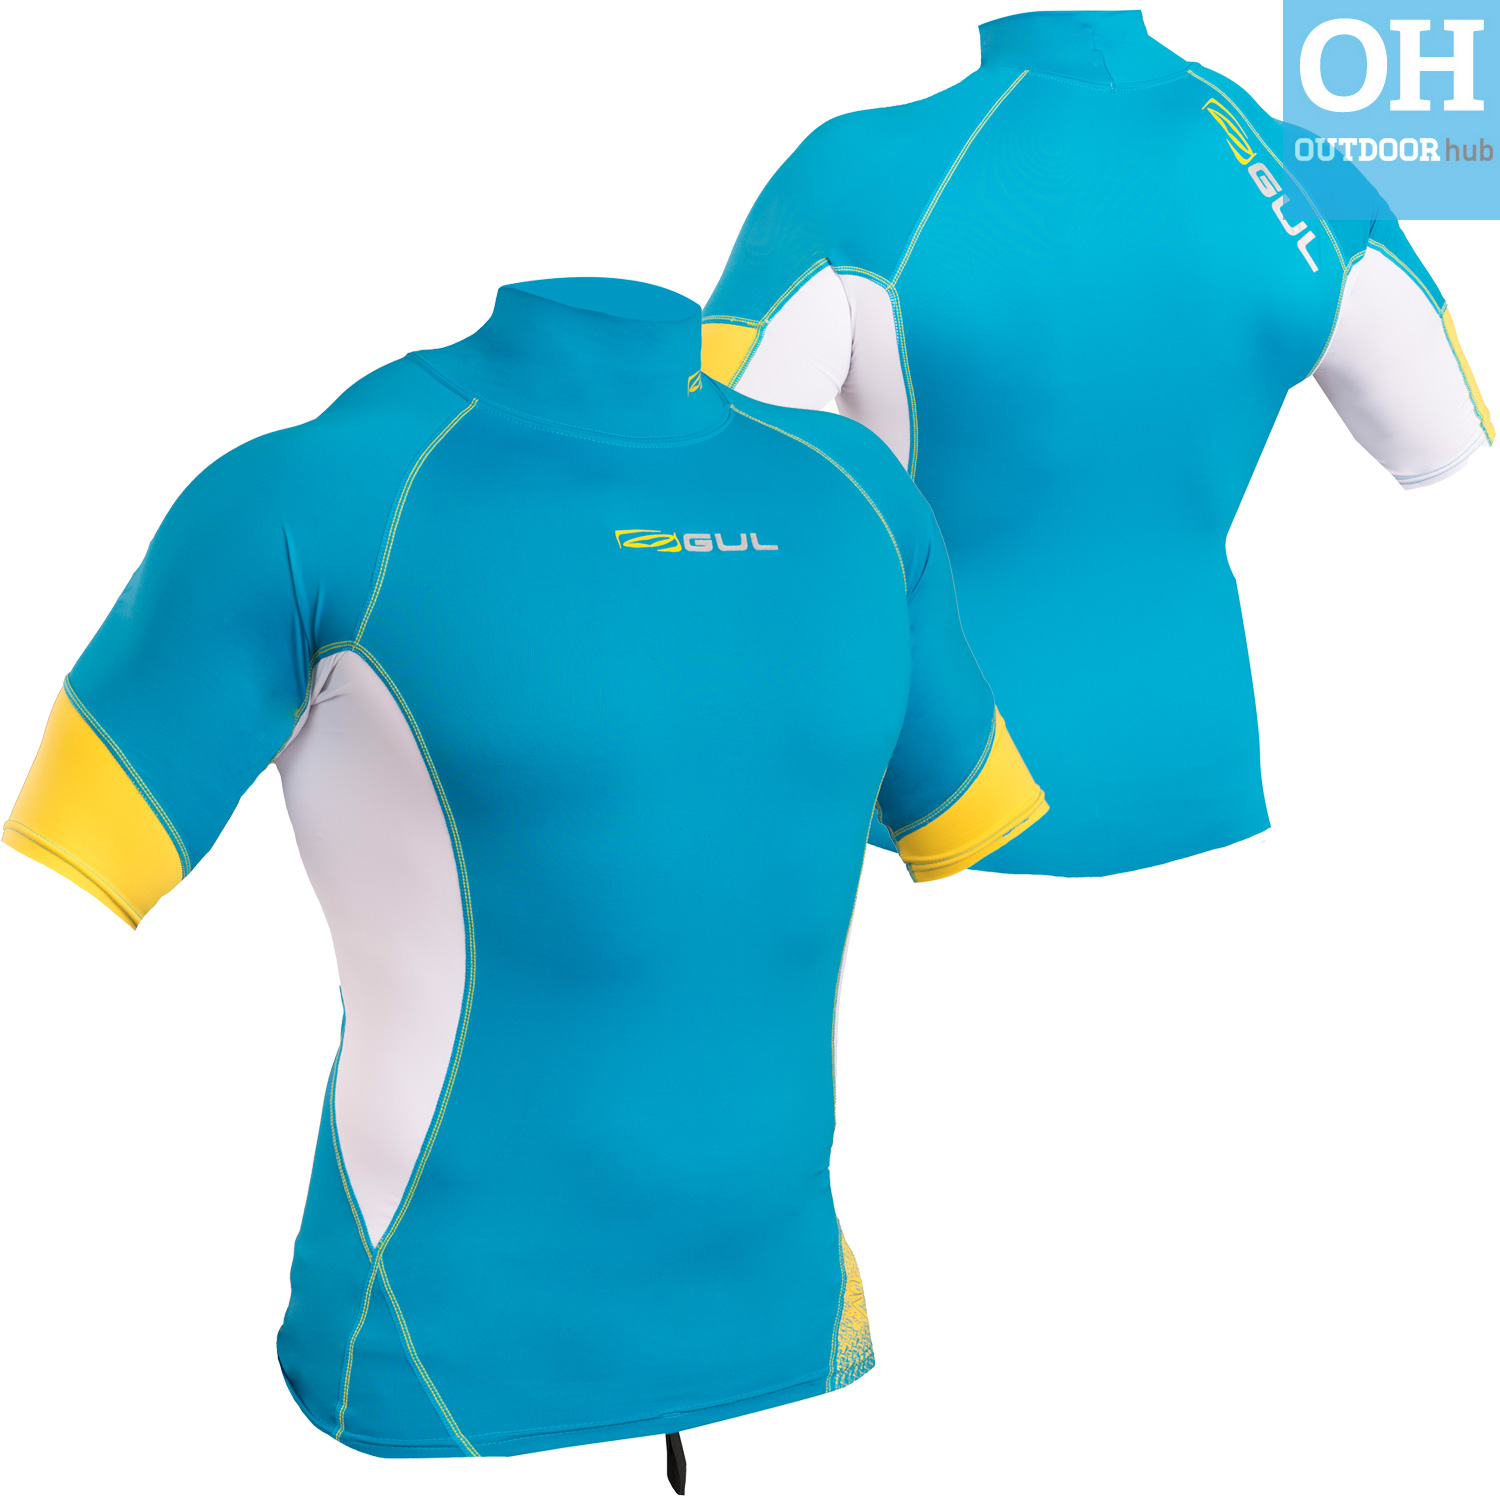 Gul-Xola-Mens-Short-Sleeve-Rash-Guard-Vest-Wetsuit-Top-UV-50-Surf-Swim-Dive thumbnail 18